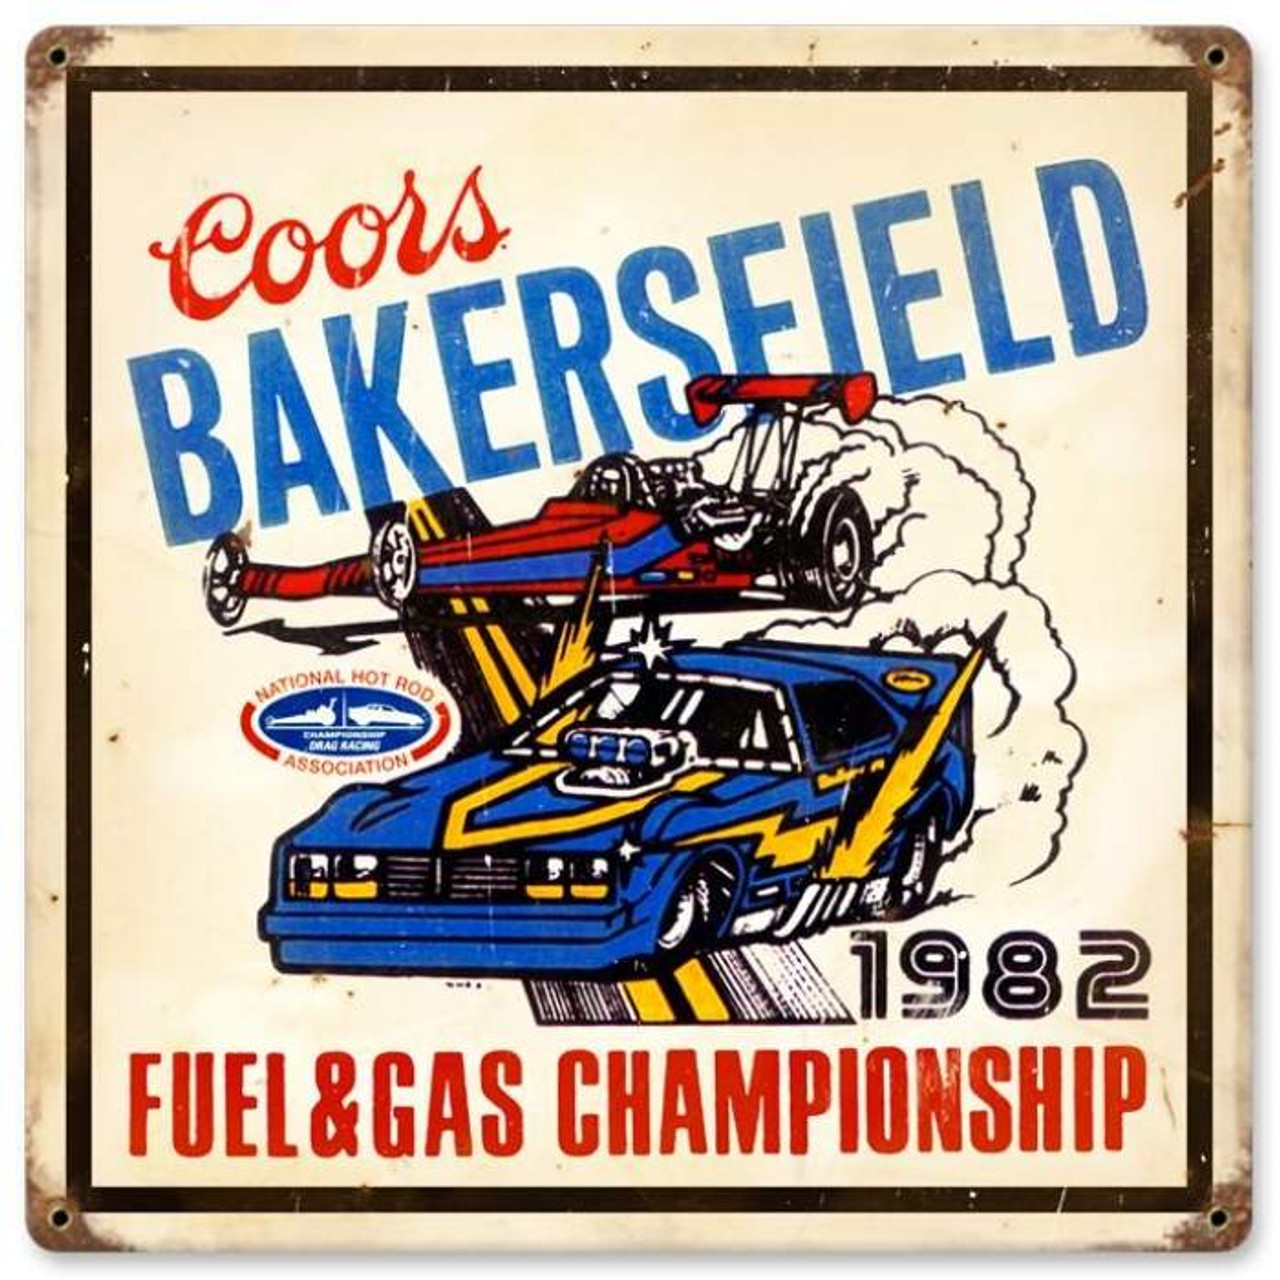 Vintage Bakersfield Coors Metal Sign 12 x 12 Inches